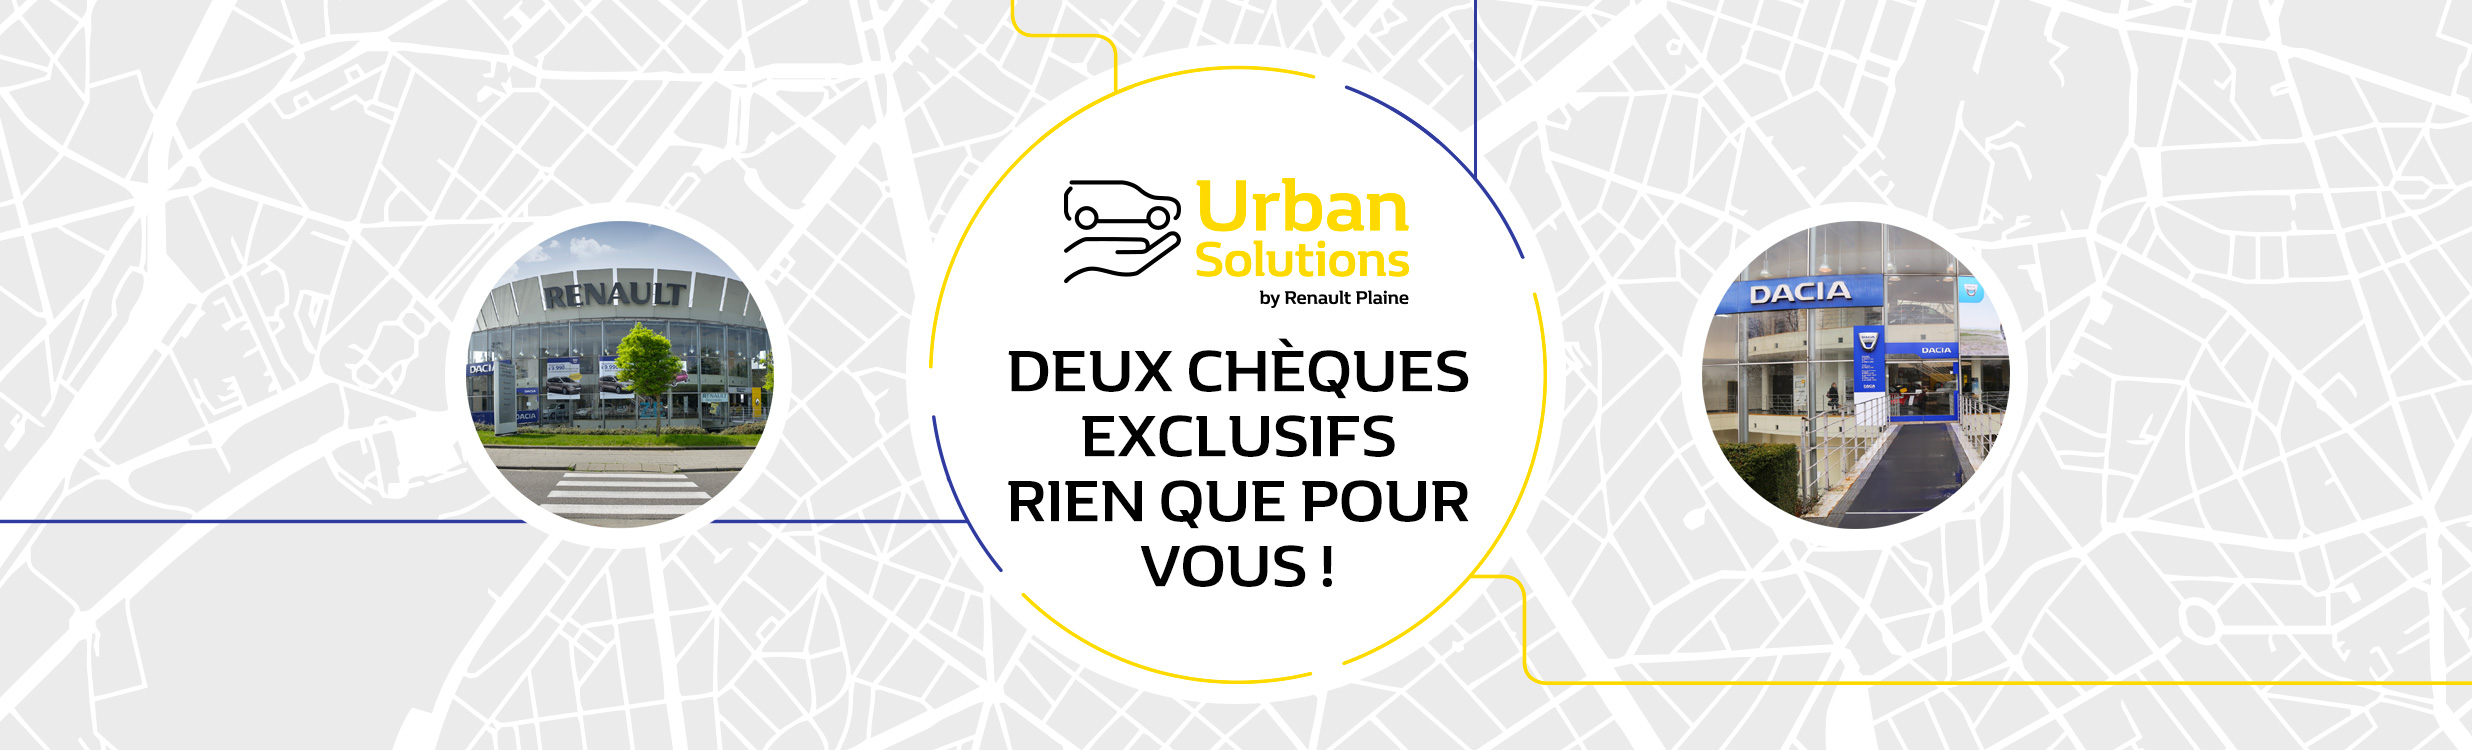 Urban Solutions by Renault Plaine